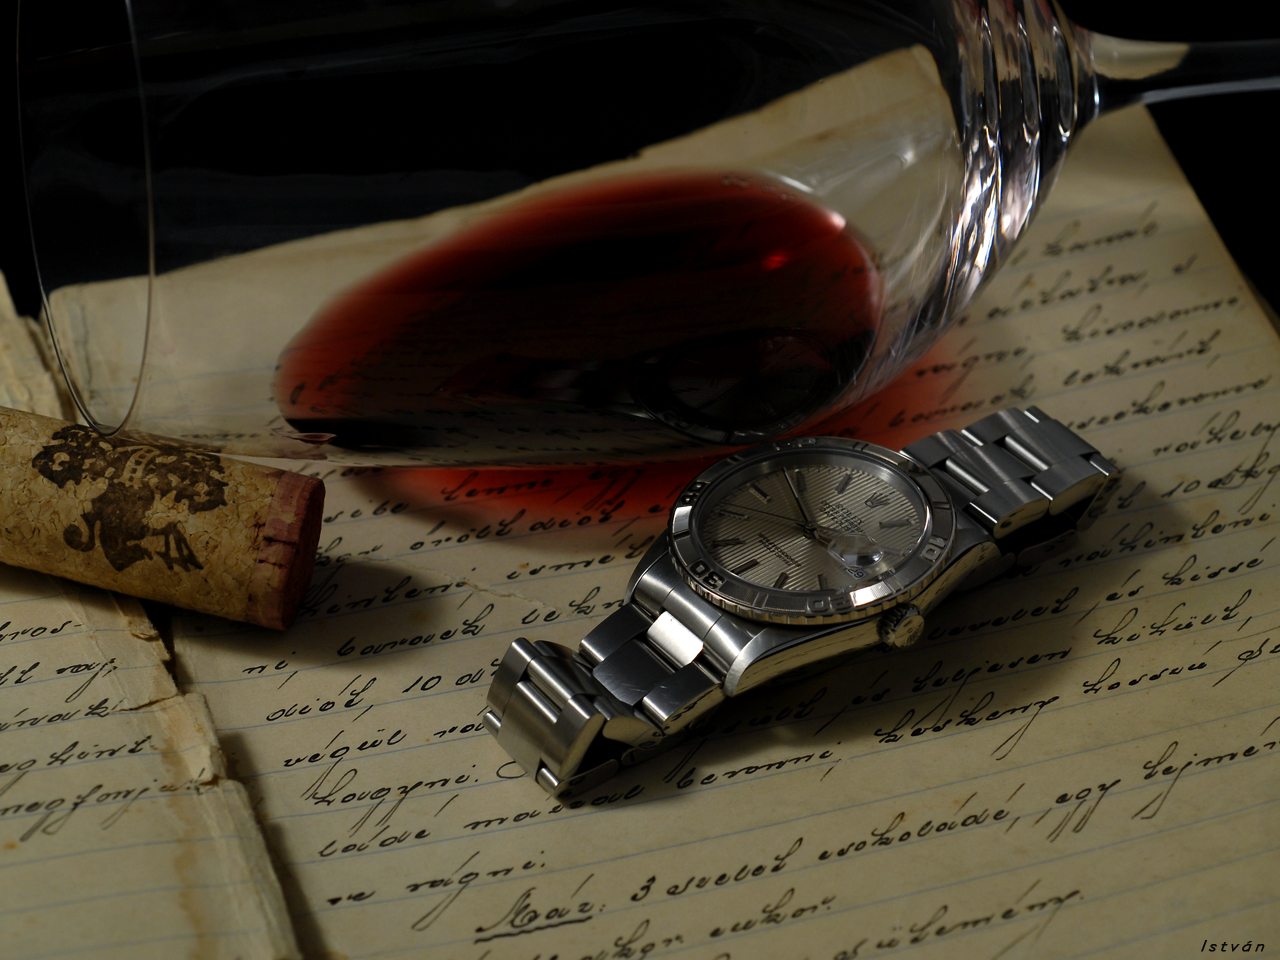 http://www.xs4all.nl/~penzes/16264/TOG-red%20wine.jpg